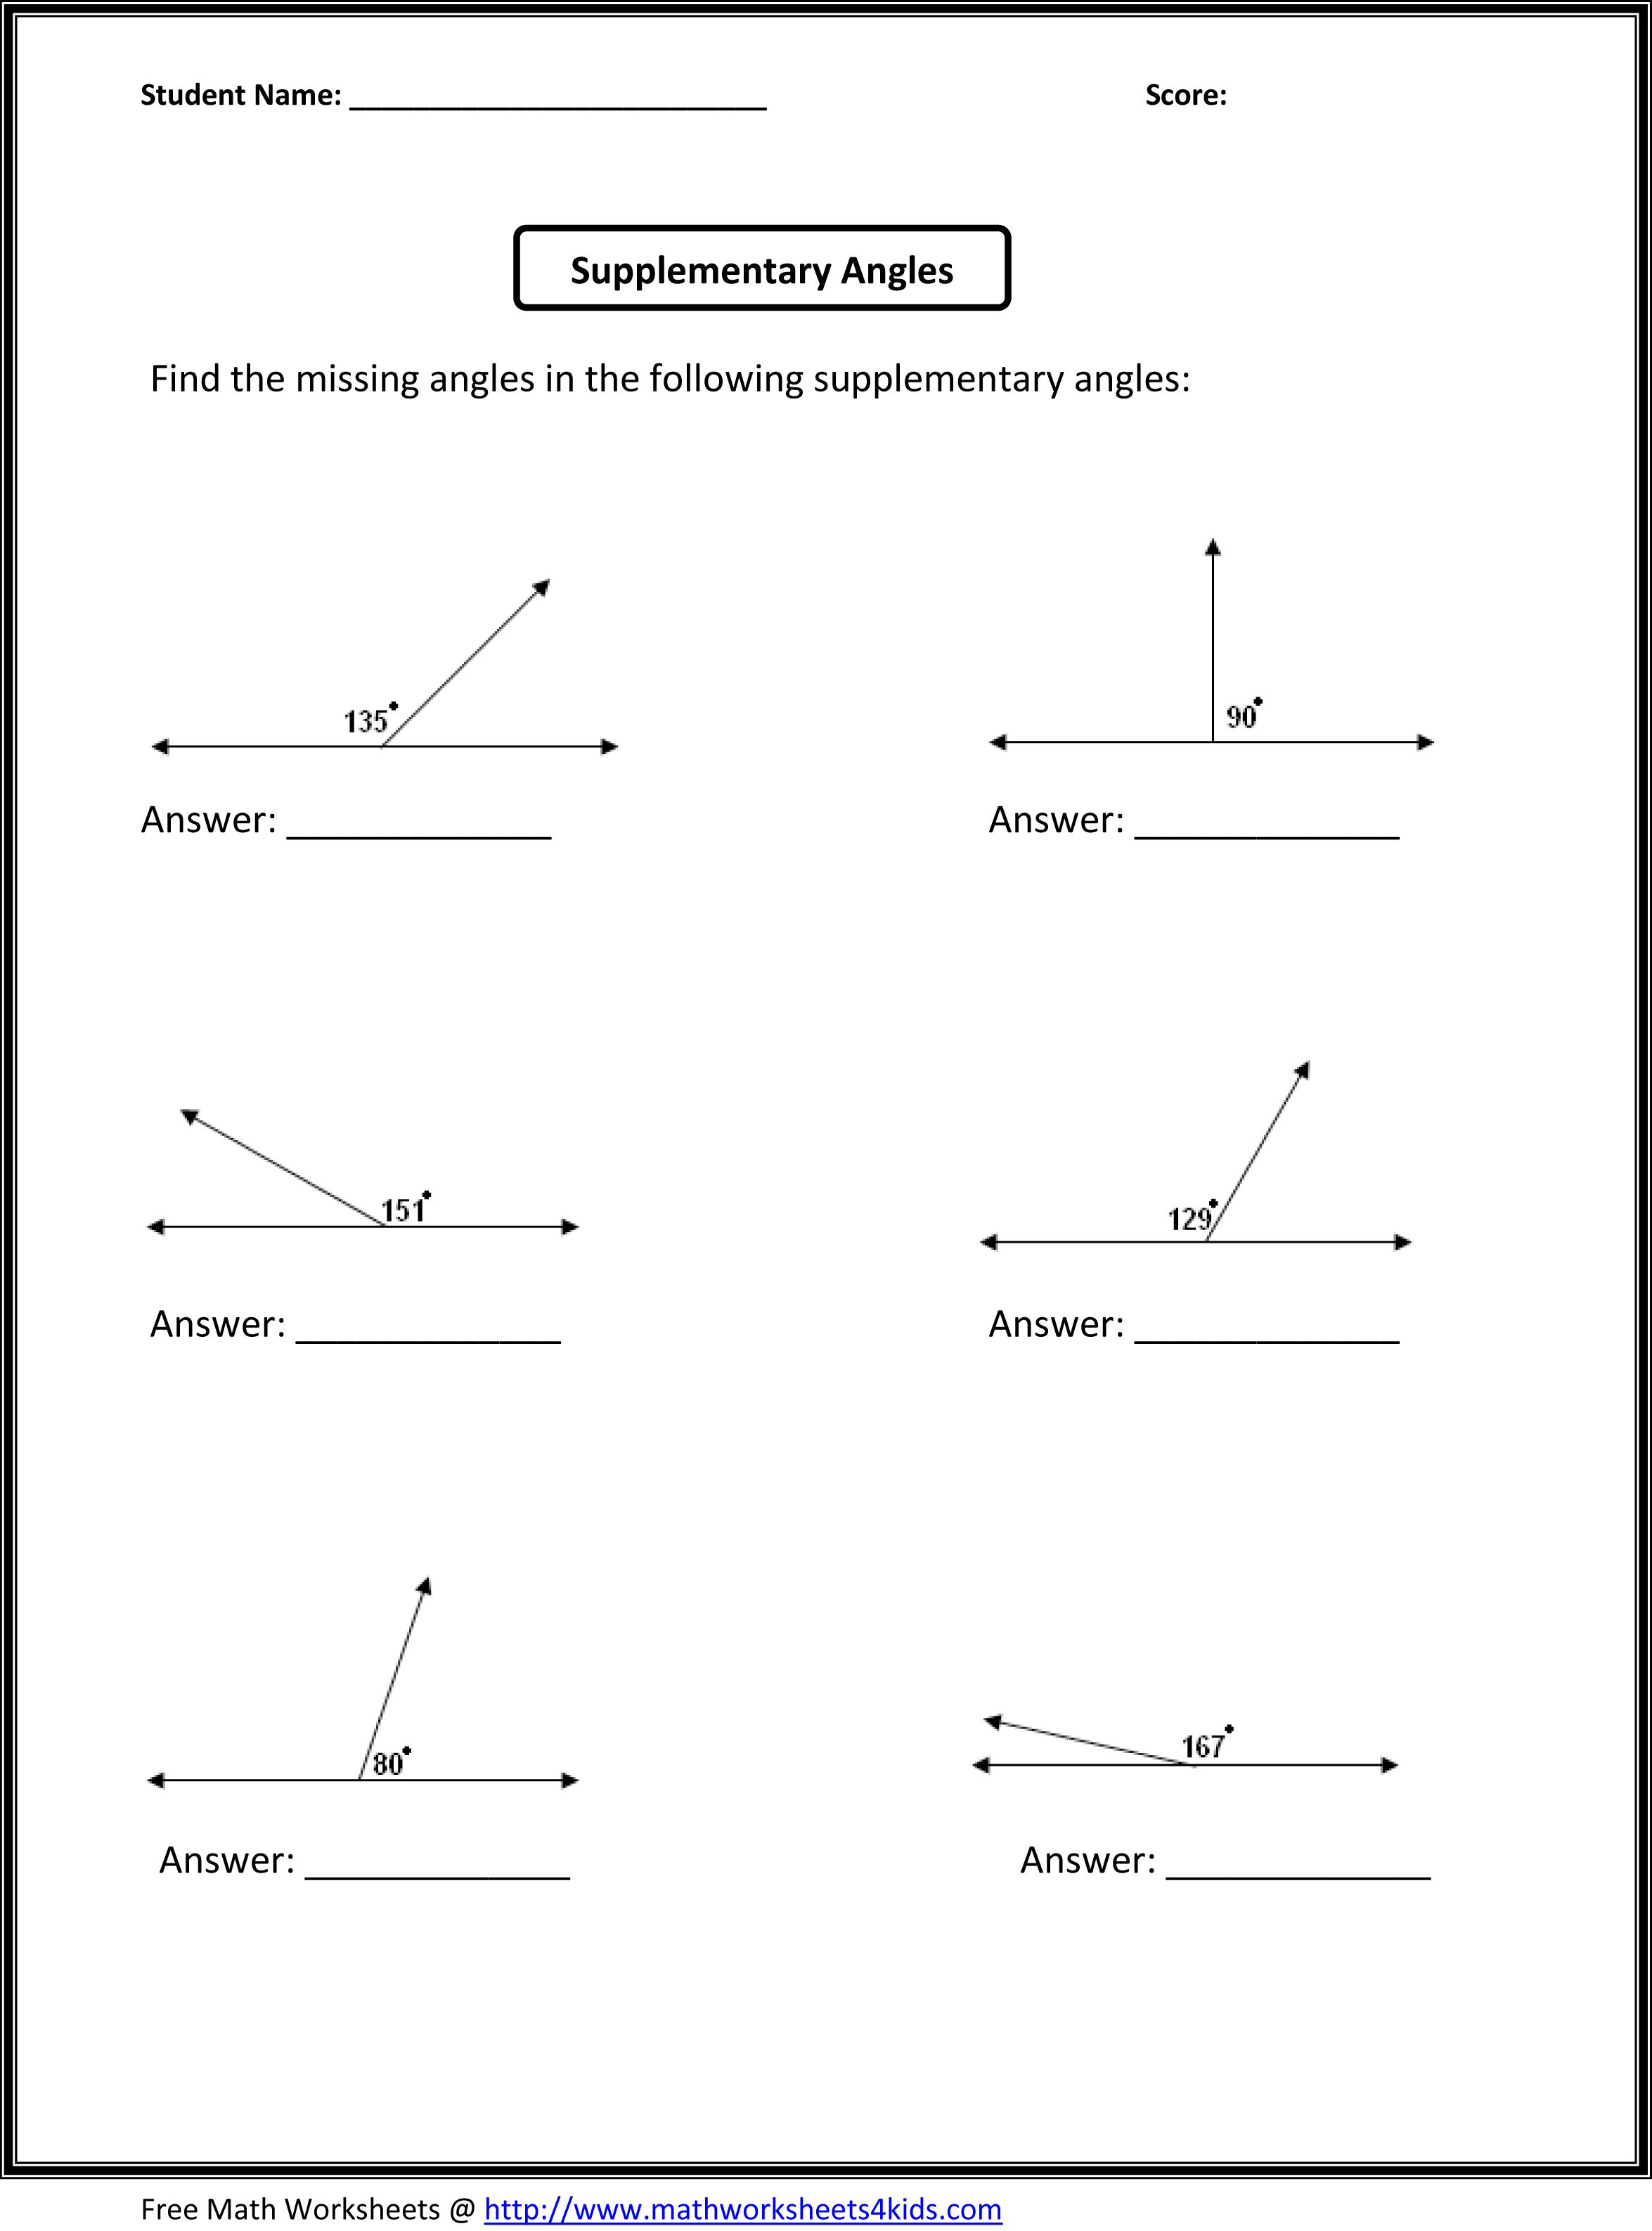 Worksheets Geometry Angles Worksheet supplementary angles classroom madness pinterest activities sixth grade math worksheets have ratio multiplying and dividing fractions algebraic expressions equations inequalities geom